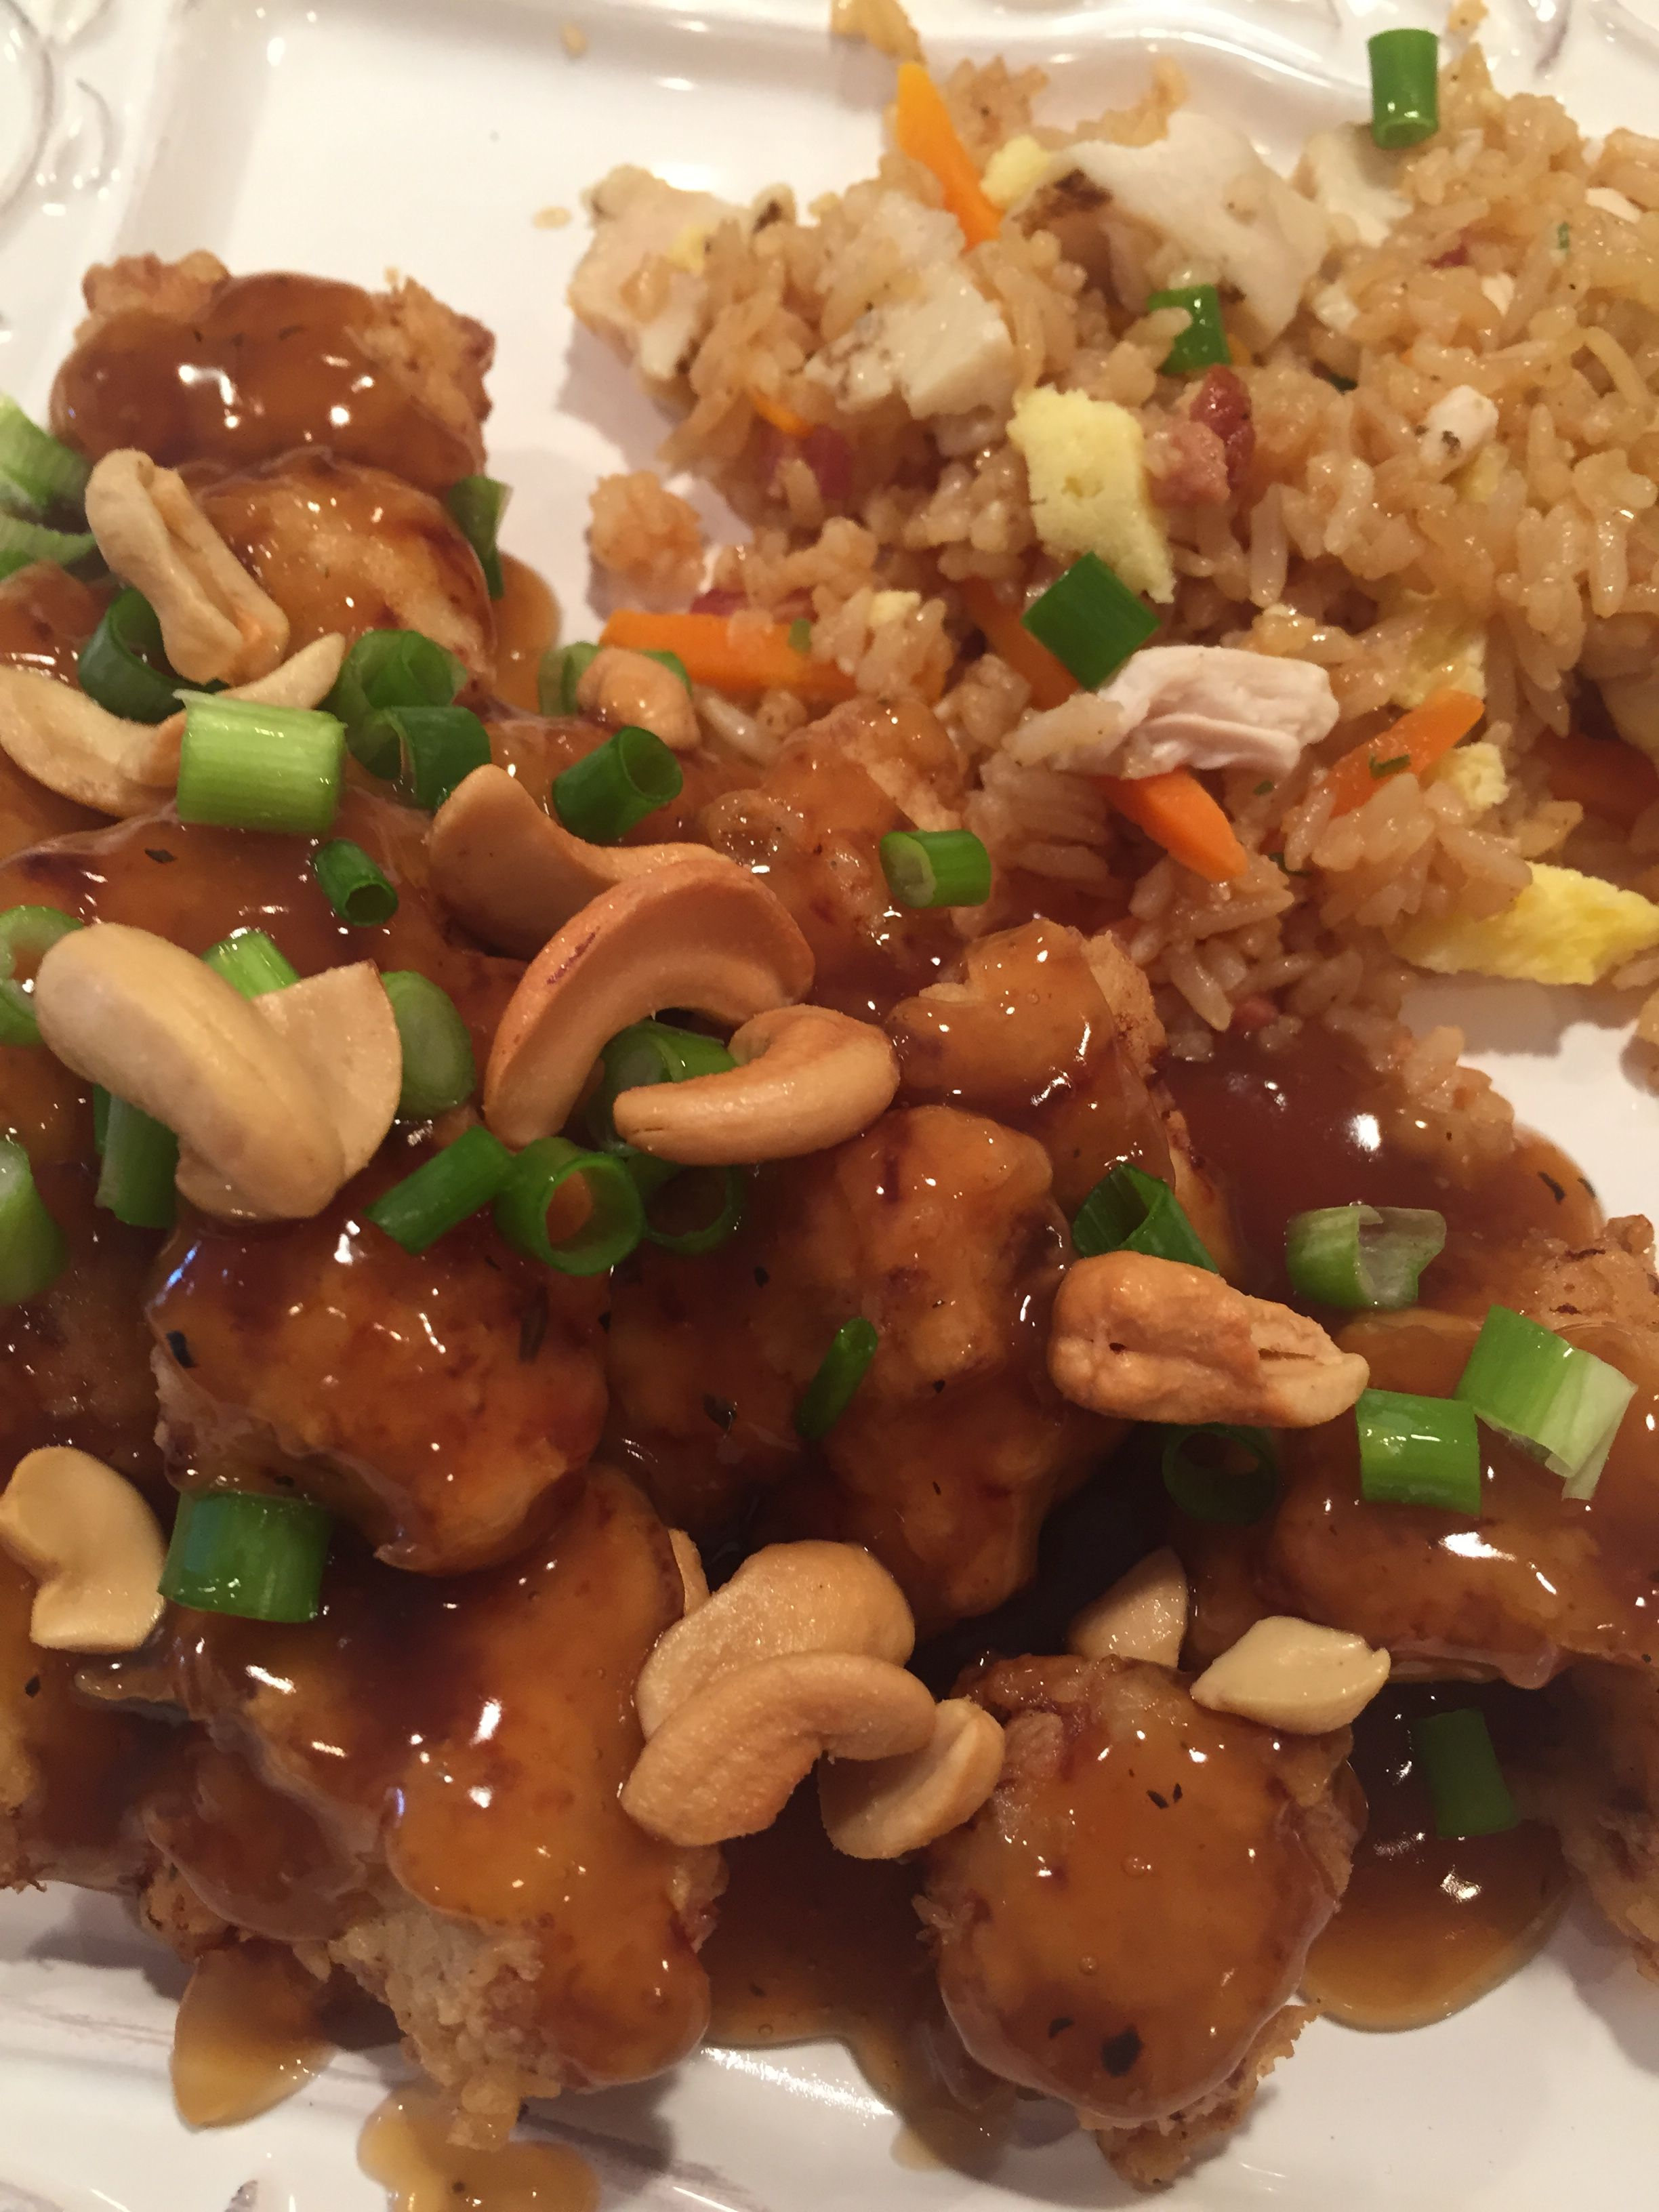 I Grew Up In Springfield Missouri The Cashew Chicken Capital Of The World Chef David Leong Mov Cashew Chicken Recipe Chicken Sauce Recipes Chicken Recipes